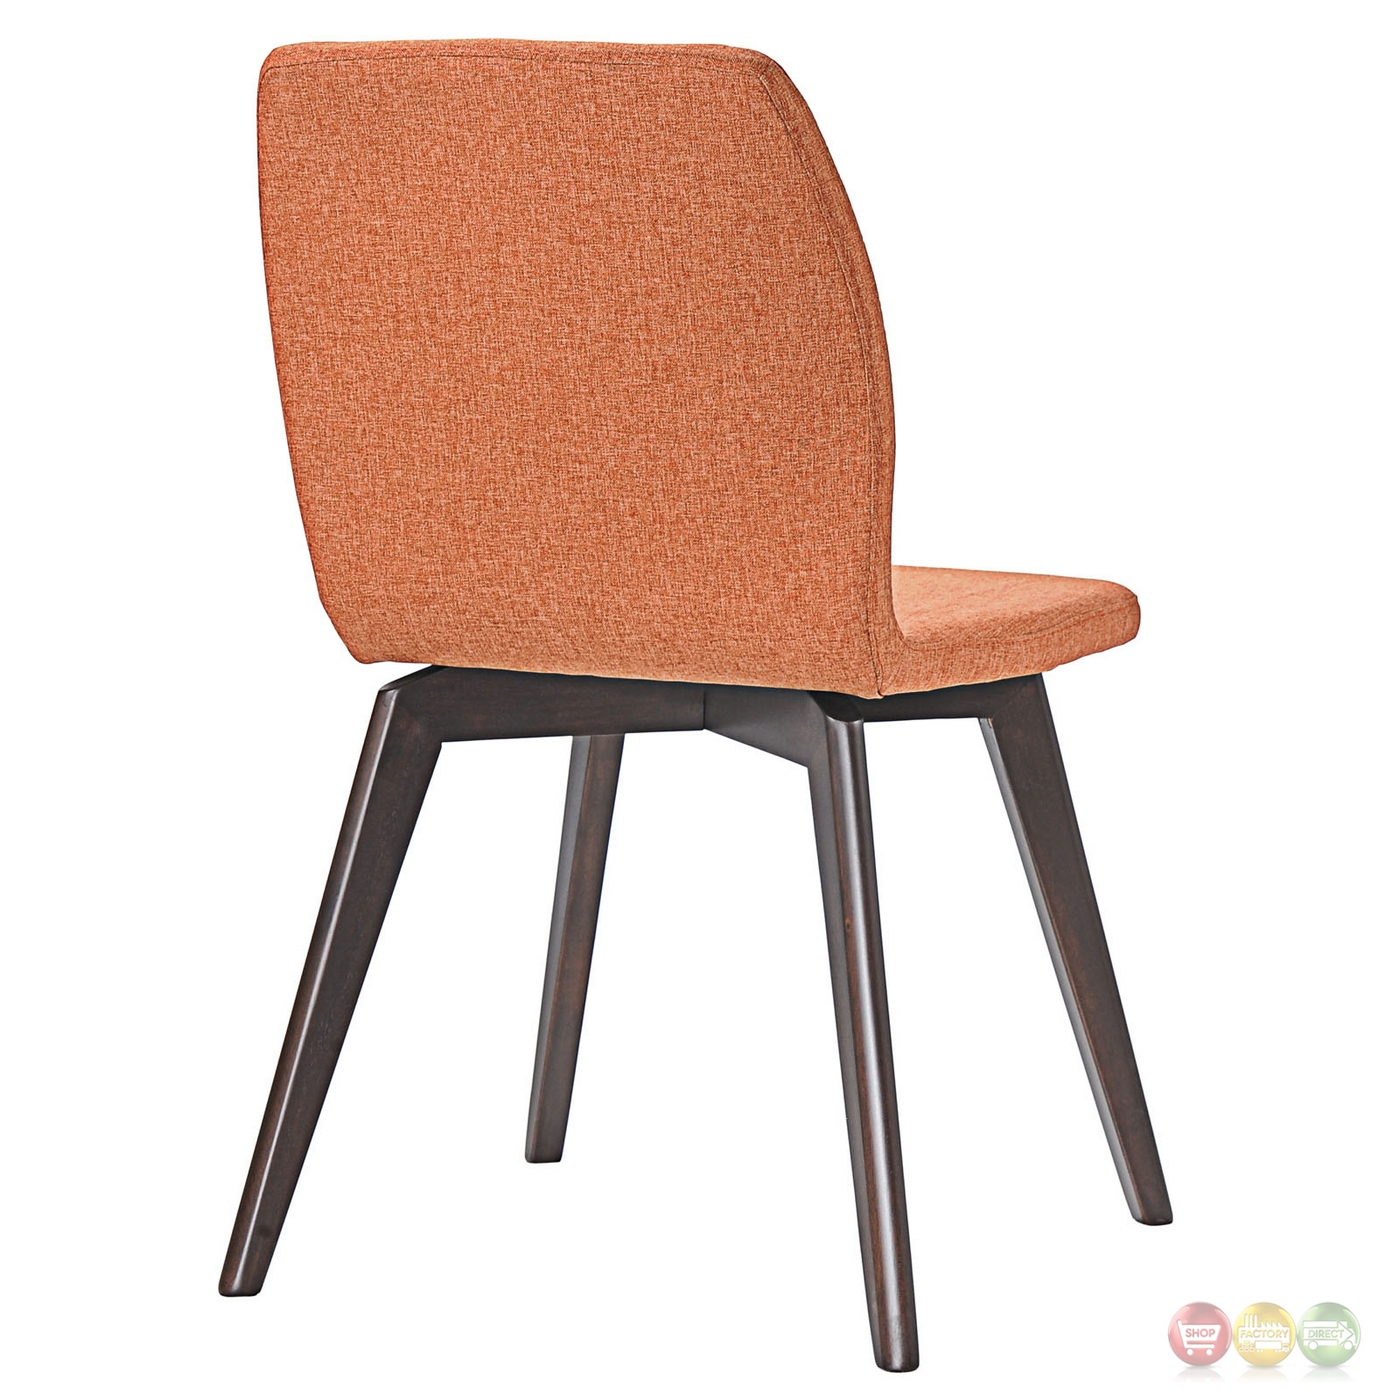 Wonderful image of Proclaim Modern Upholstered Wooden Dining Side Chair Walnut Orange with #A75924 color and 1400x1400 pixels